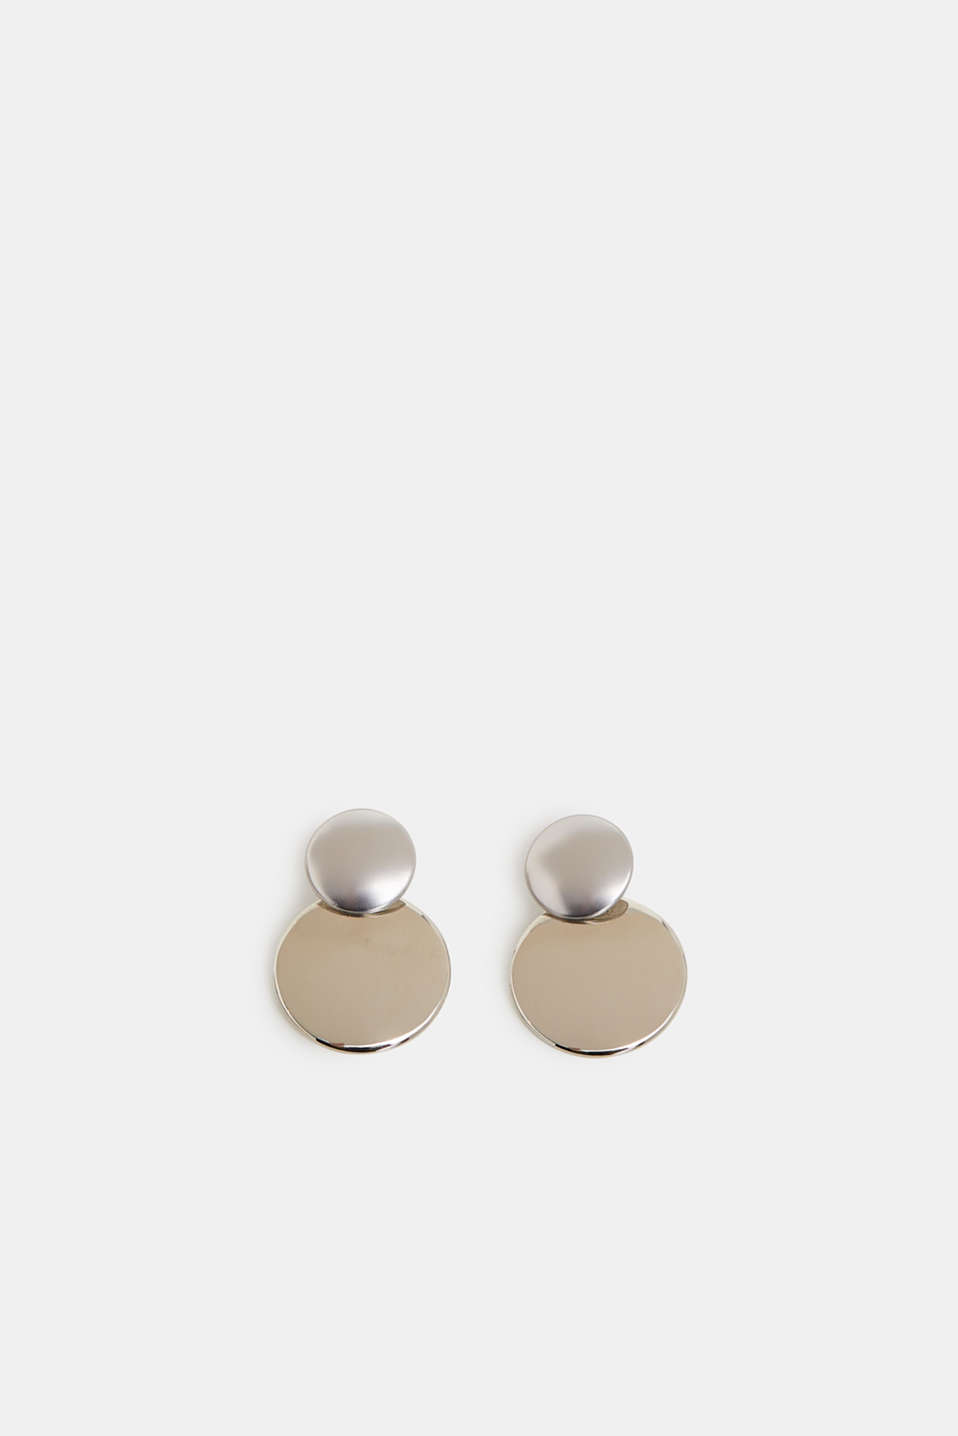 Esprit - Metal stud earrings with round pendants